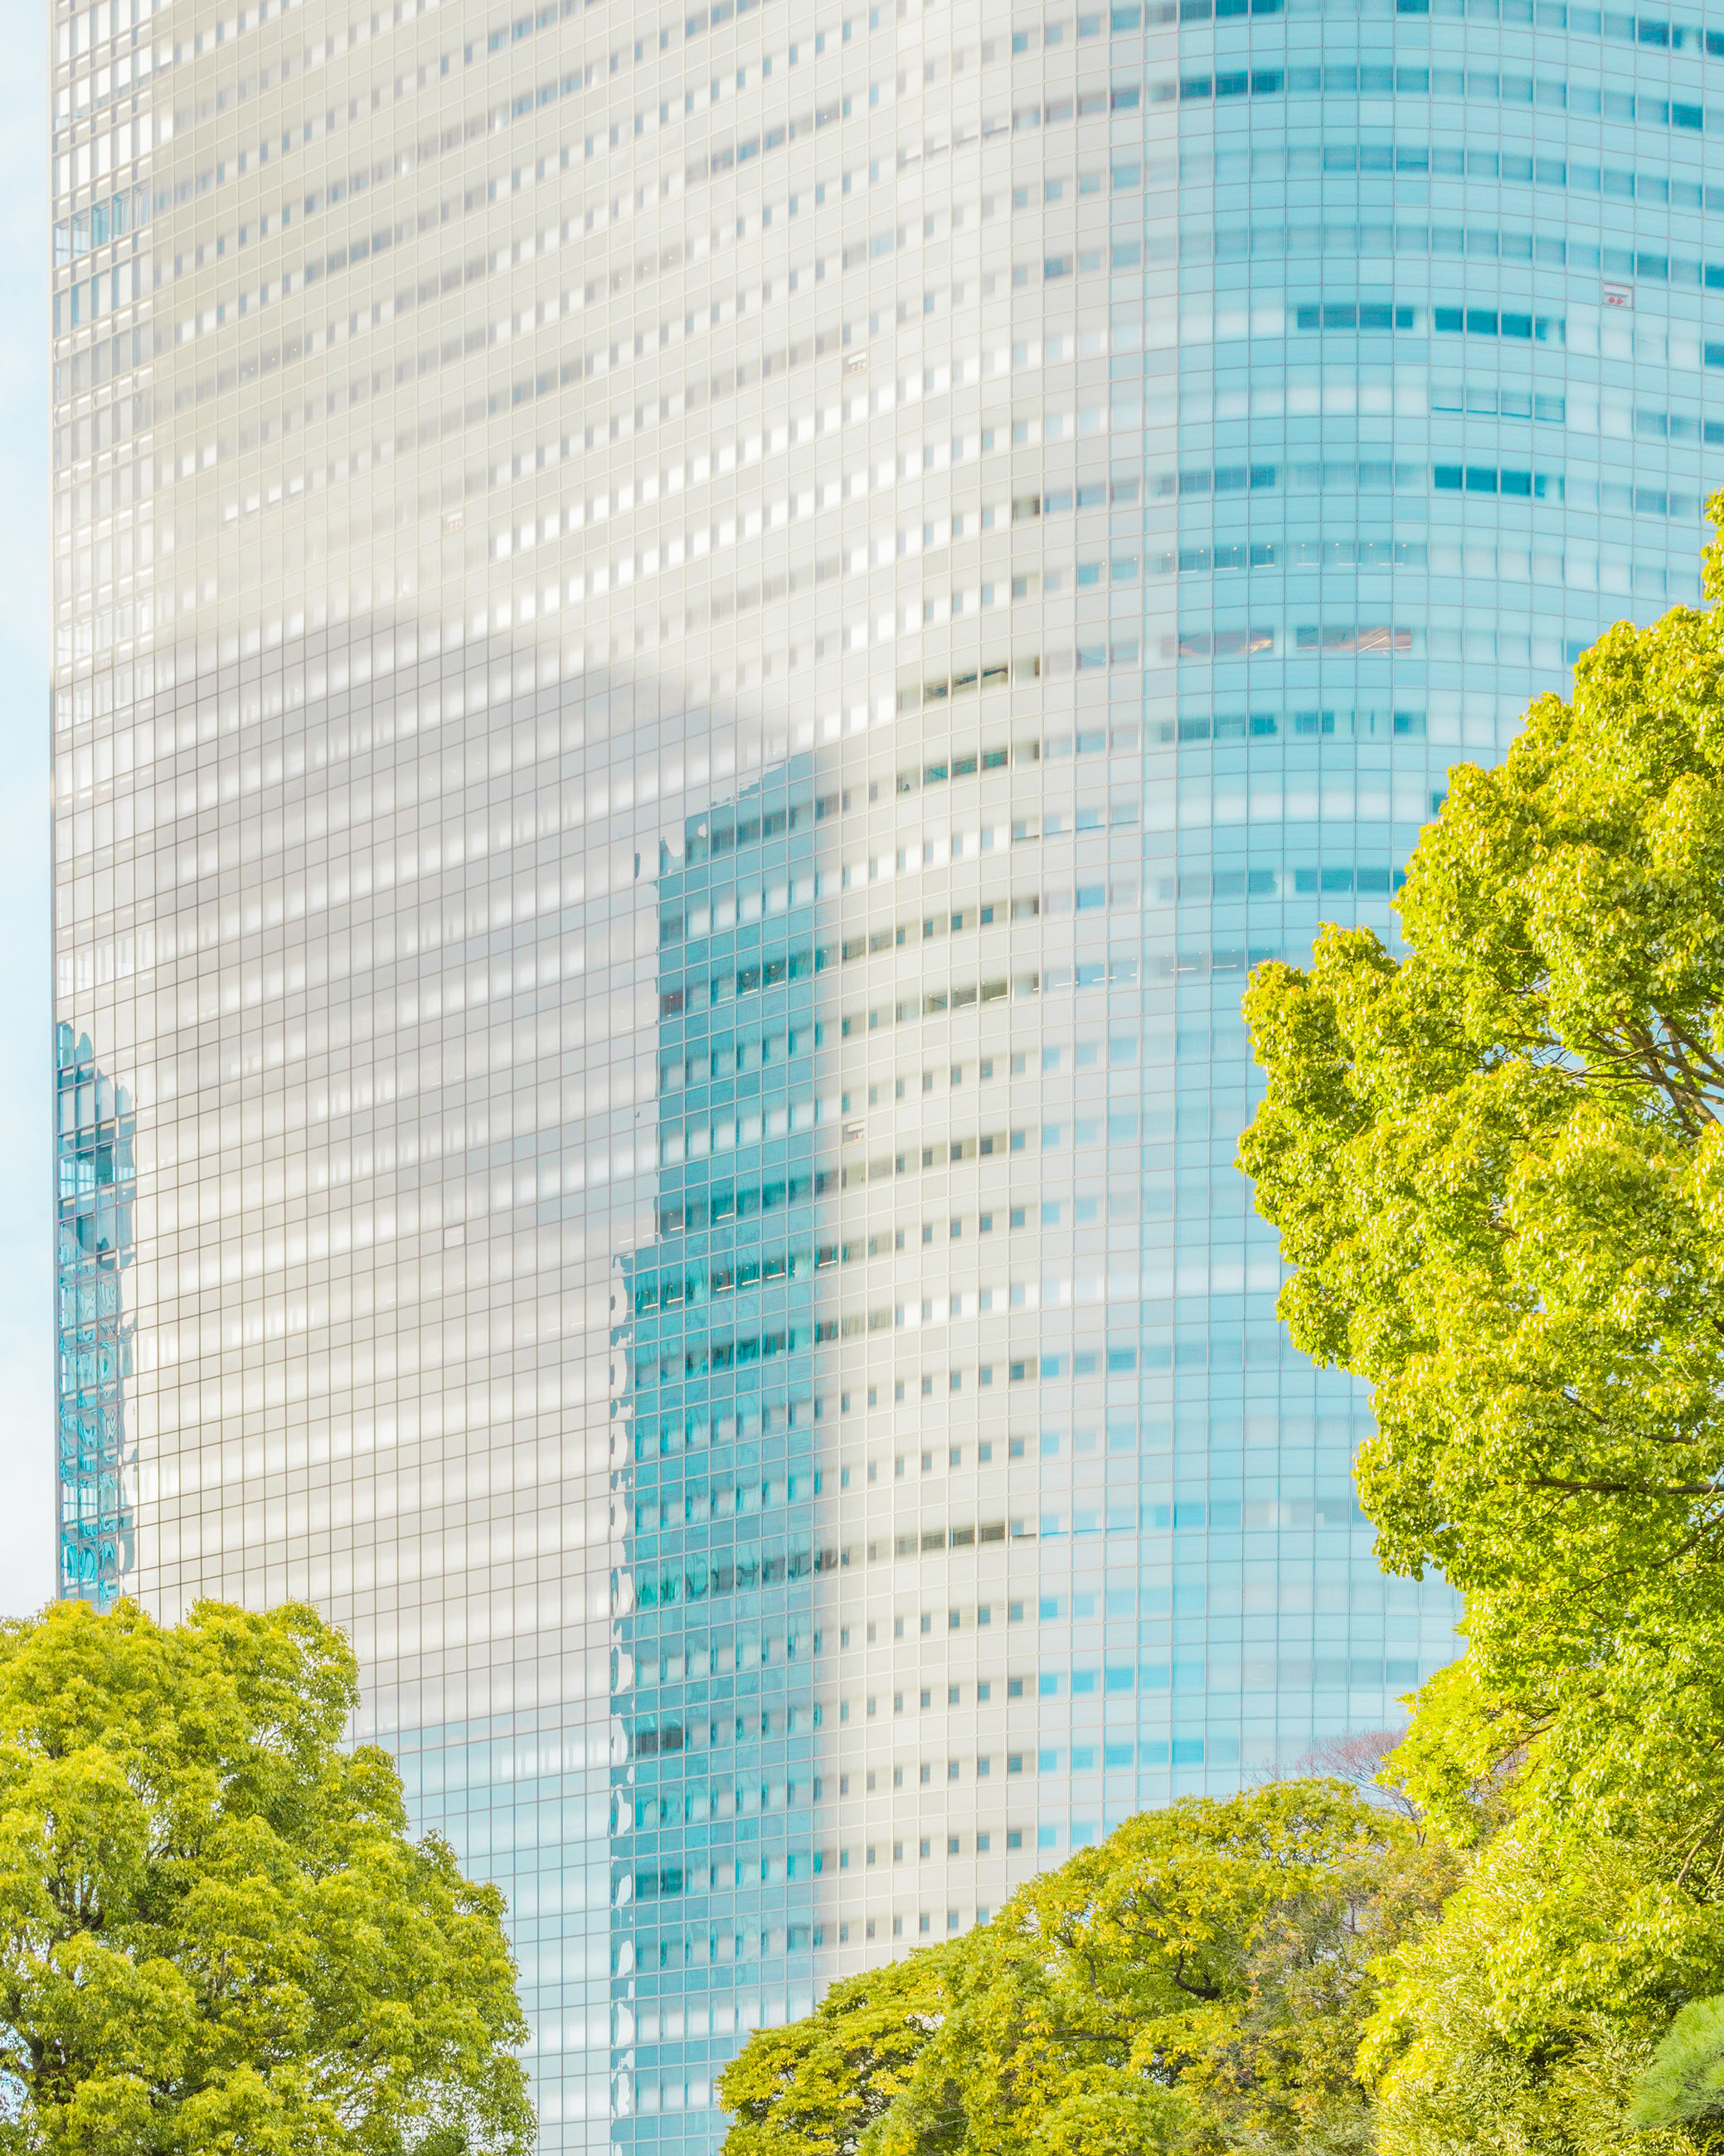 tree, window, skyscraper, architecture, city, day, low angle view, built structure, building exterior, outdoors, green color, growth, no people, modern, cityscape, sky, close-up